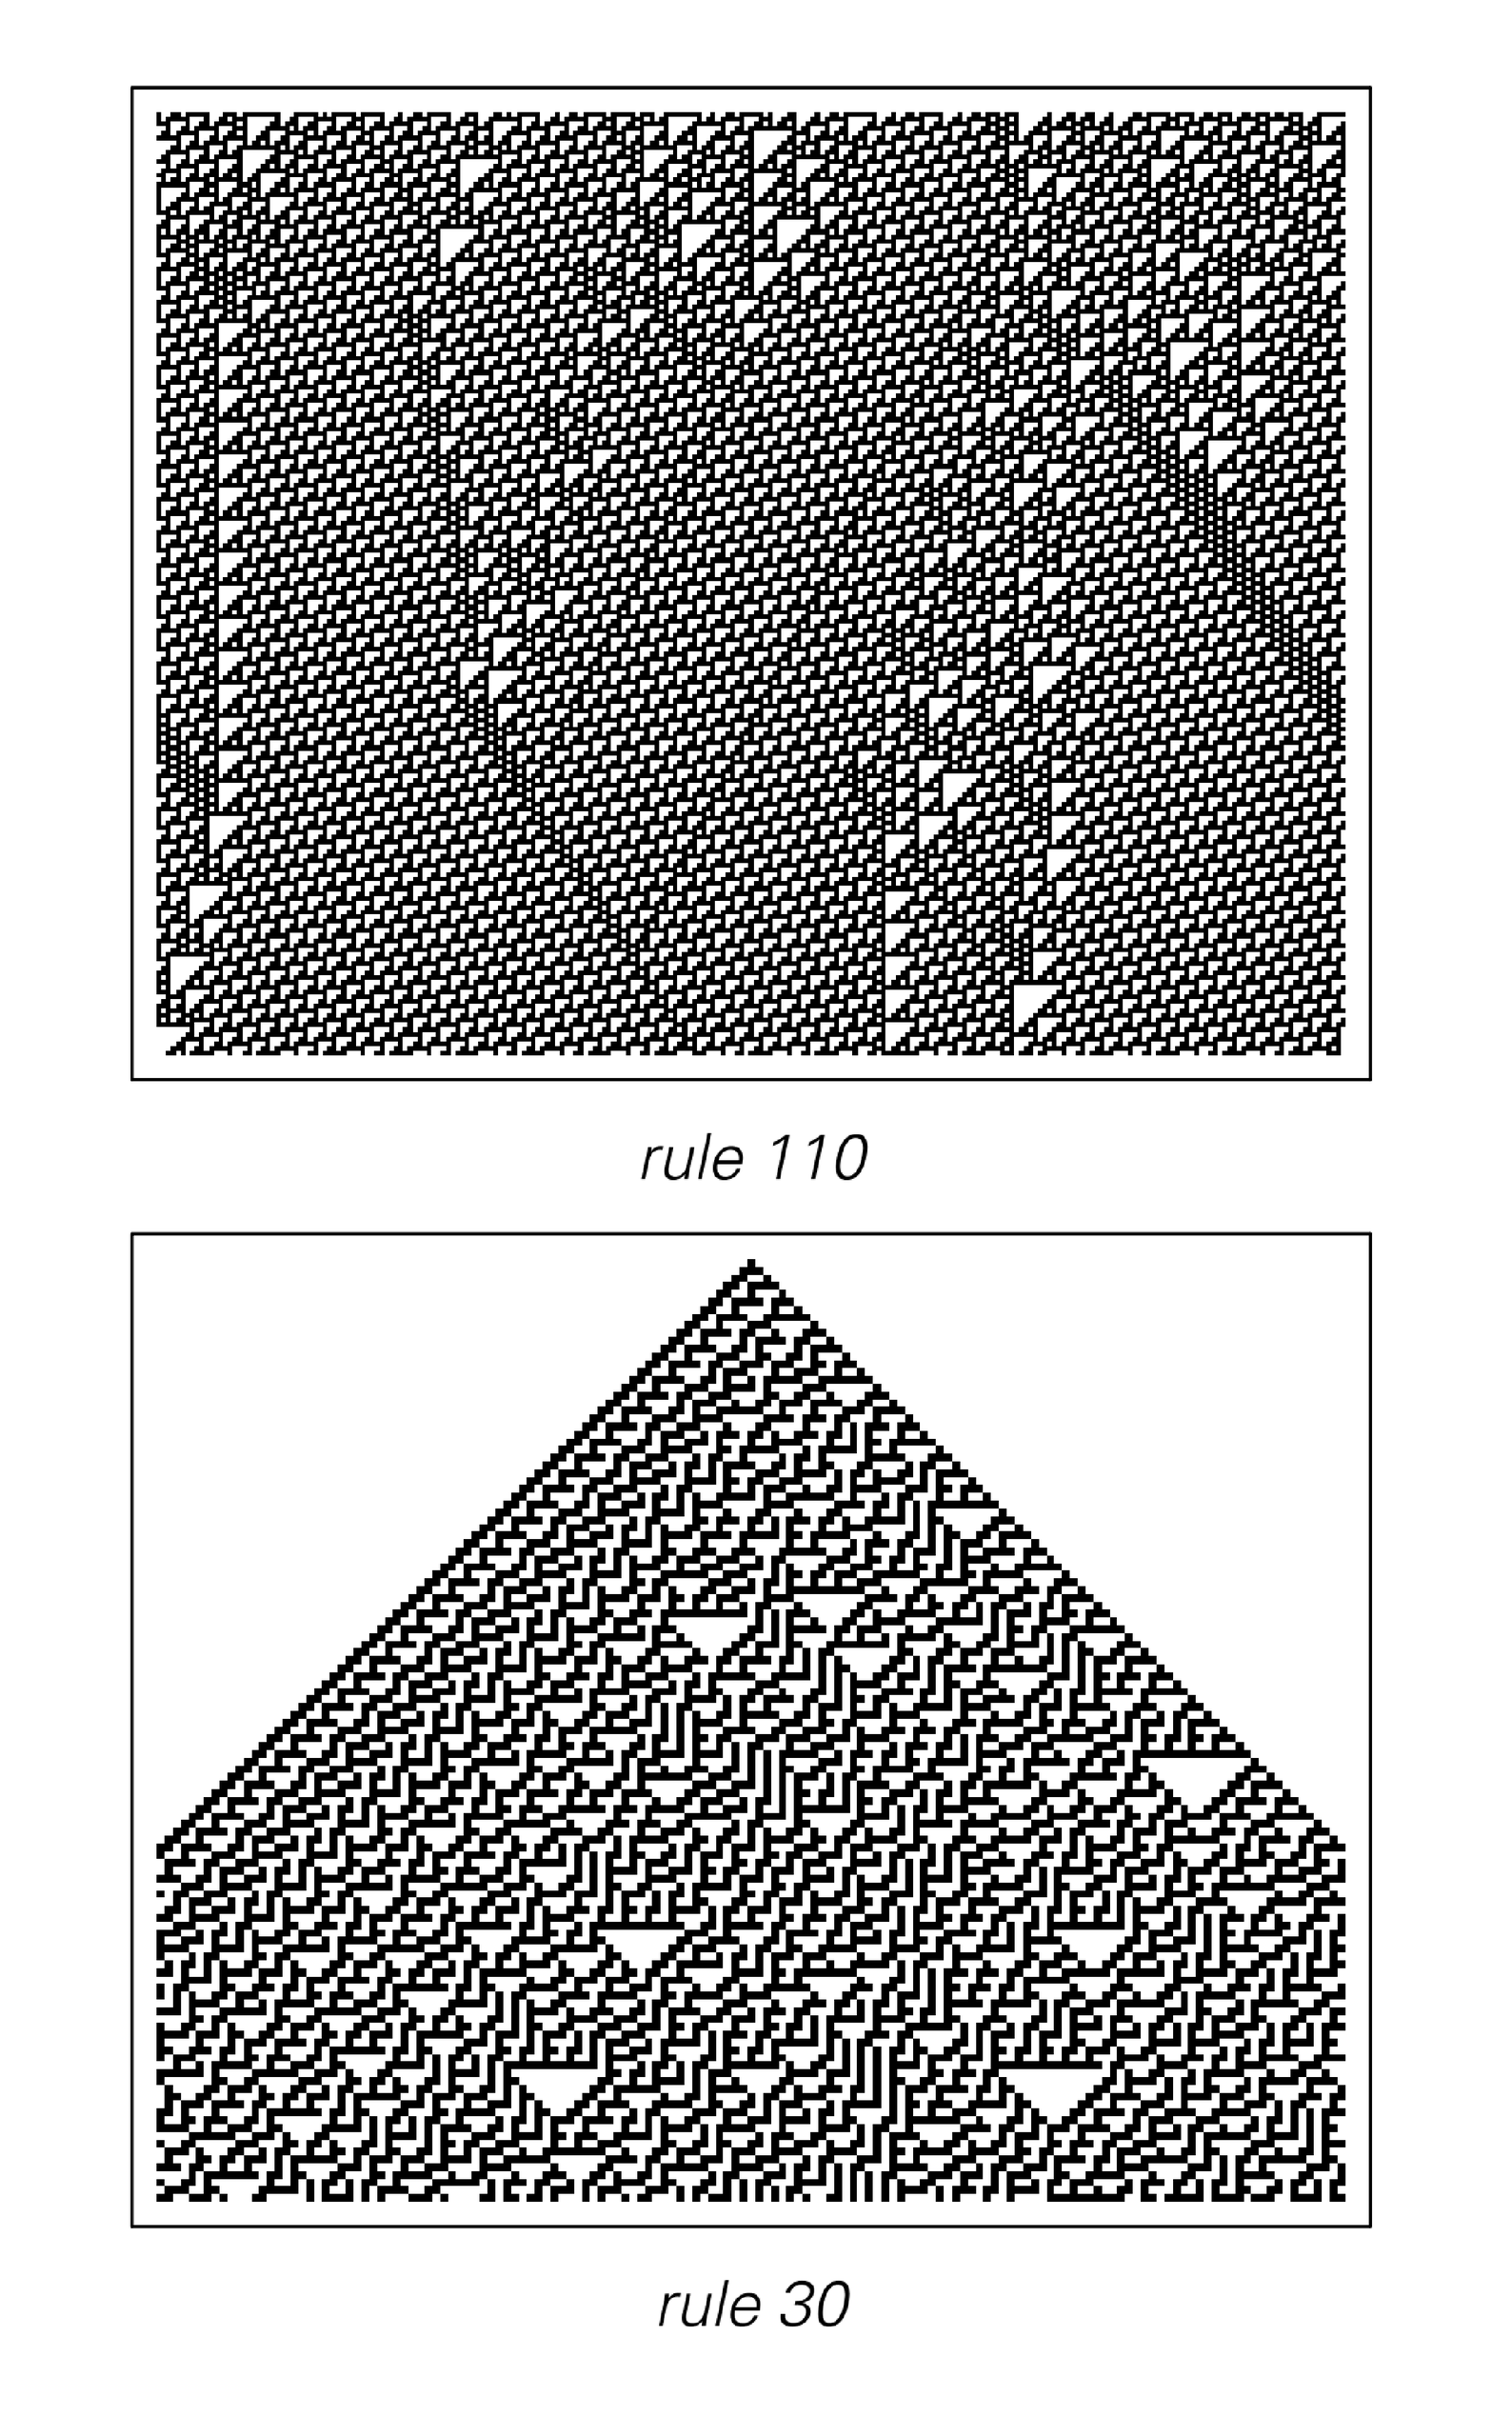 Cellular automata whose behavior does and does not give the impression of being purposeful